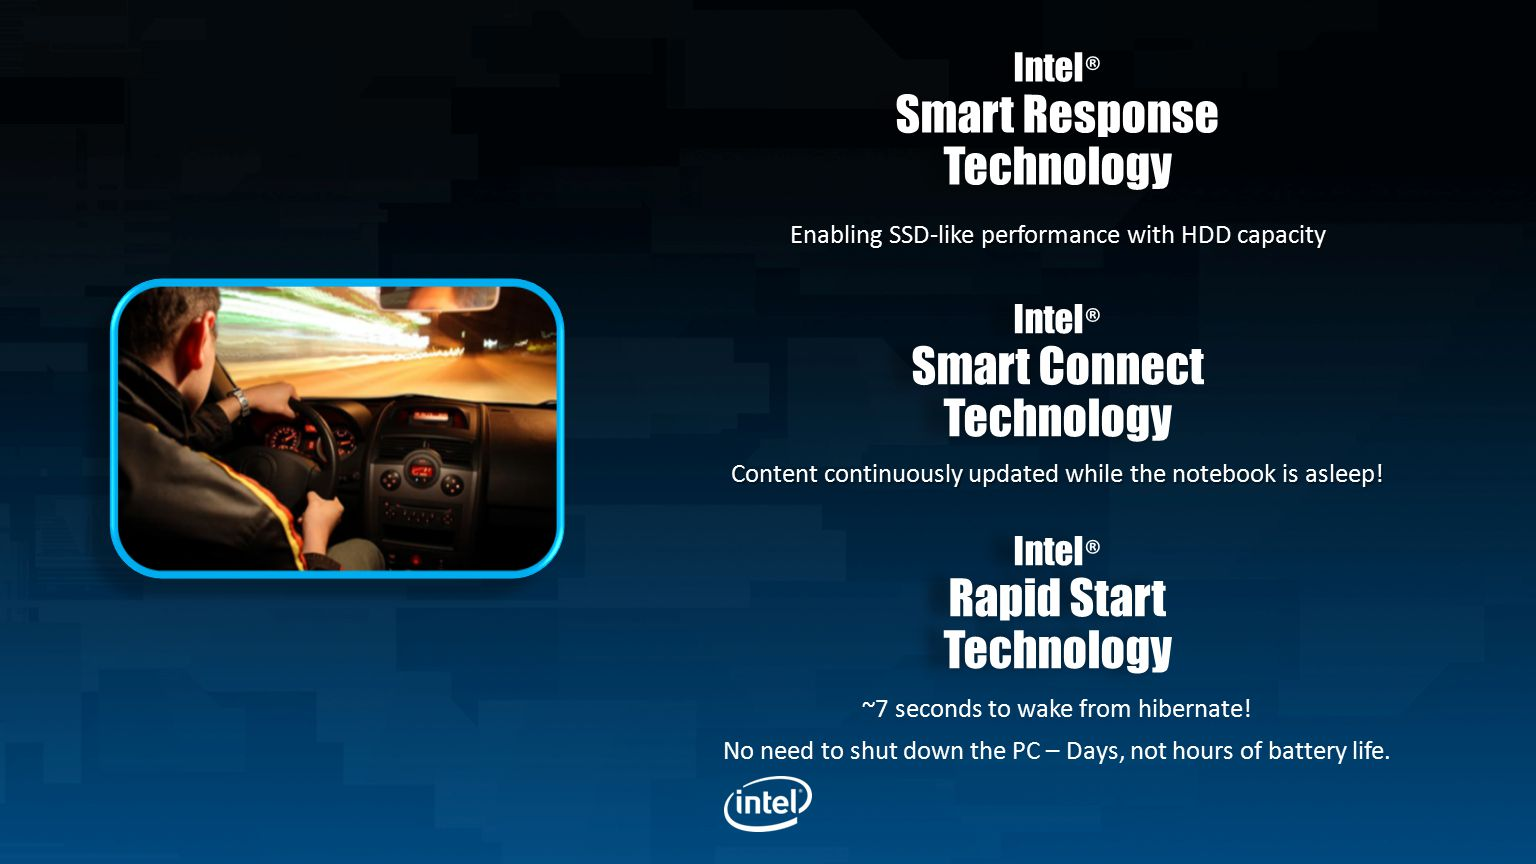 Intel ® Smart Response Technology Intel ® Smart Response Technology Enabling SSD-like performance with HDD capacity Content continuously updated while the notebook is asleep.